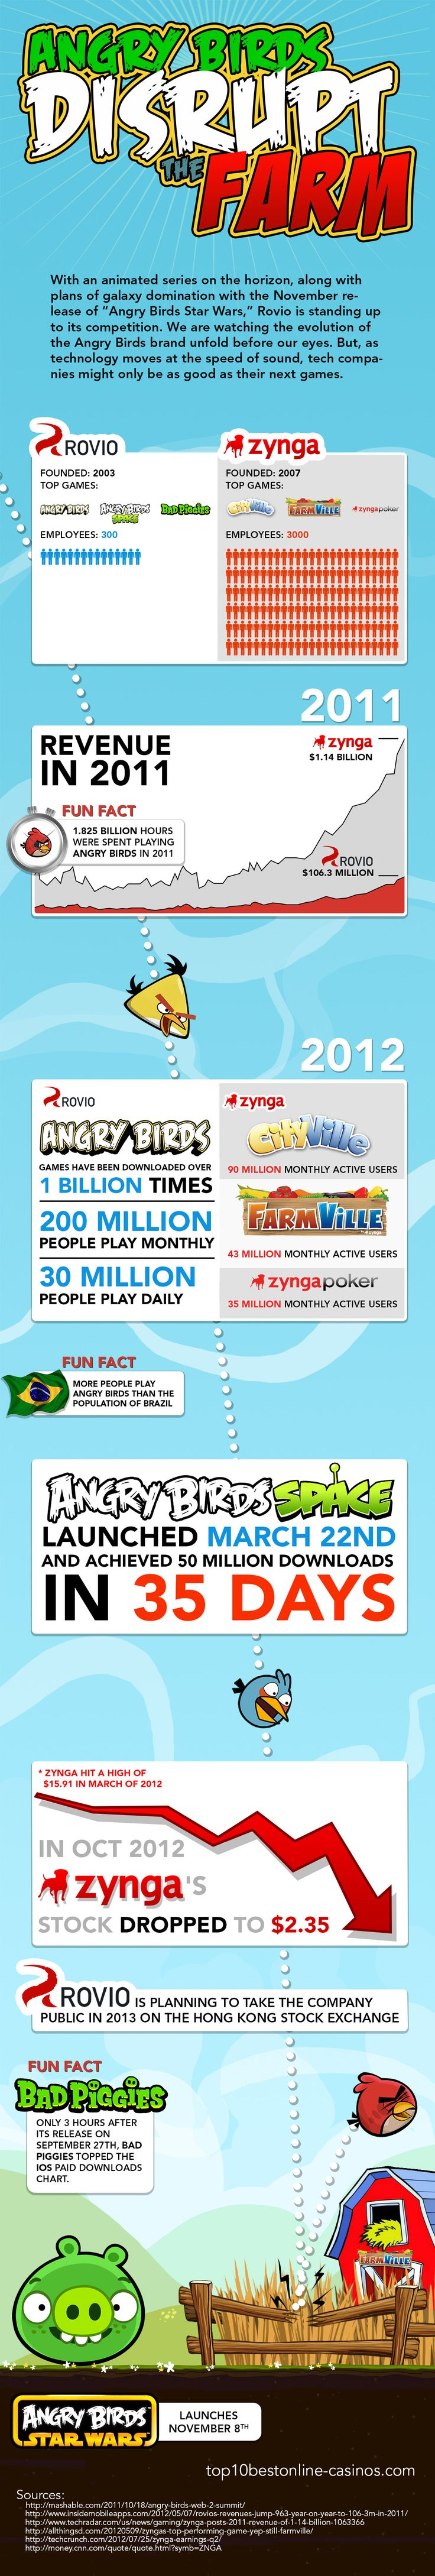 Angry Birds beating Facebook Farmville